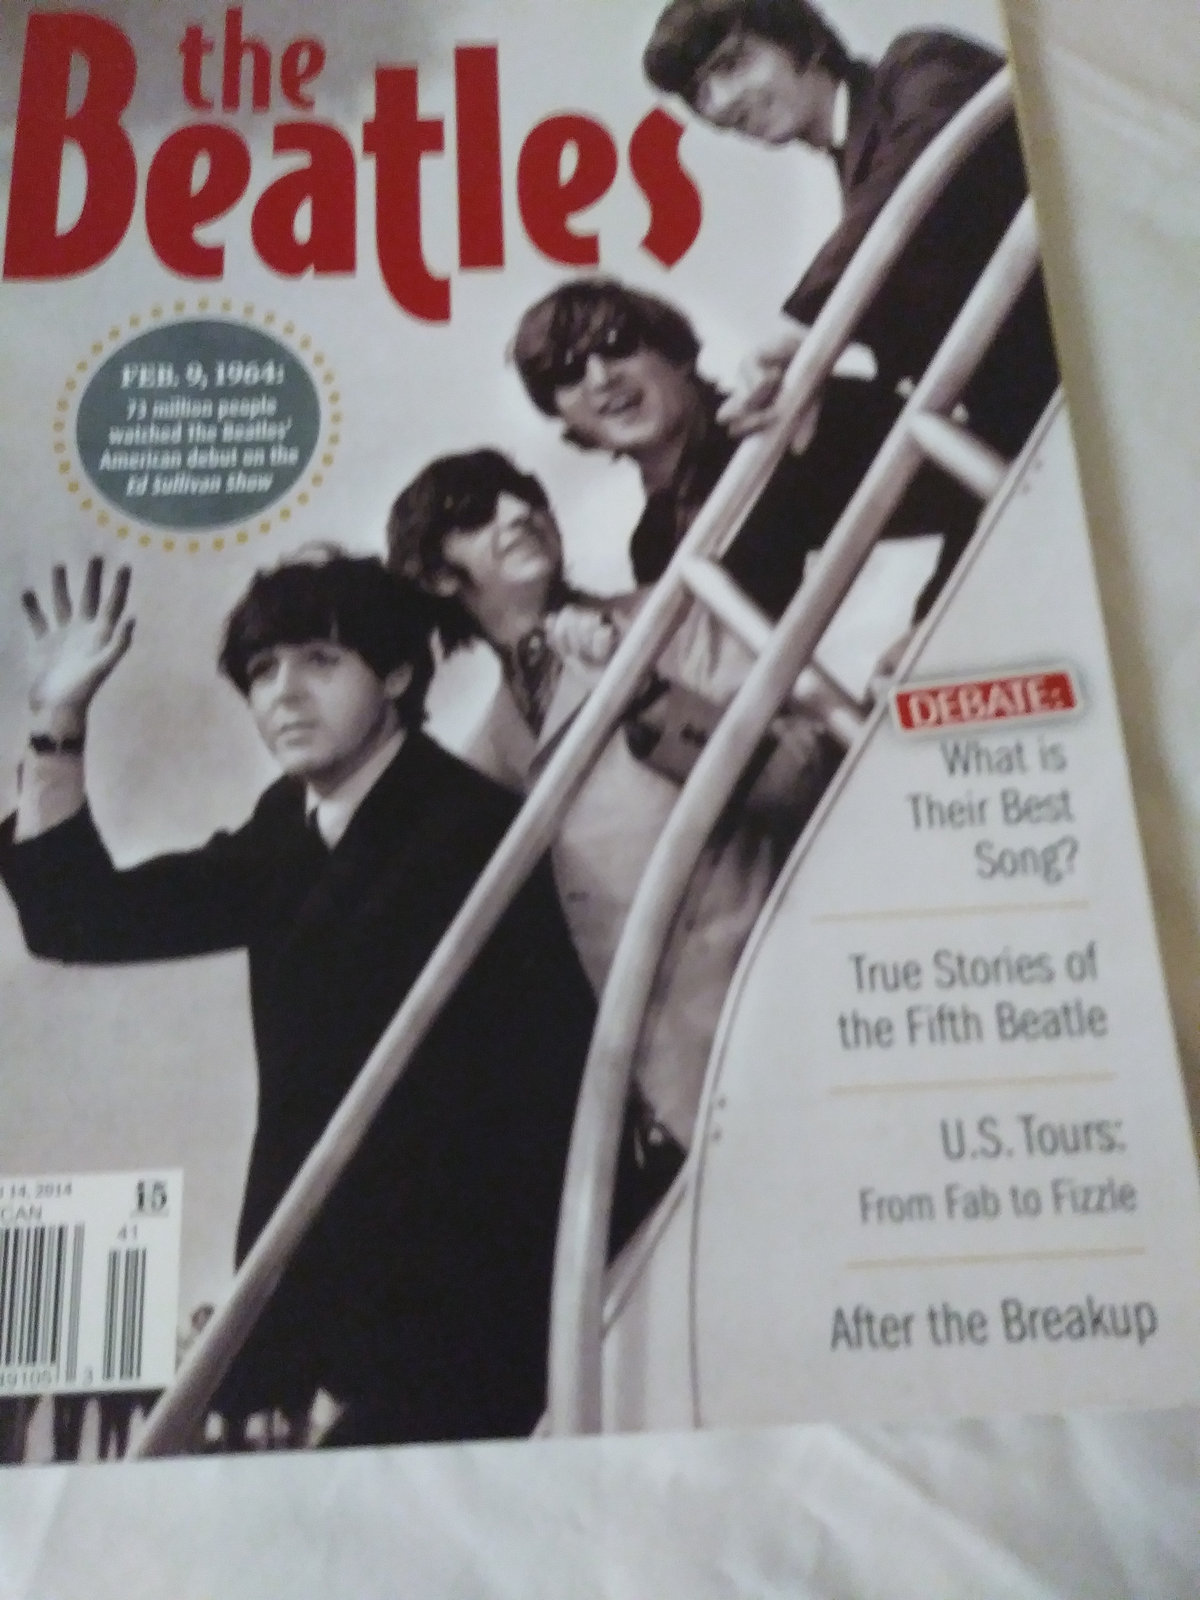 The Beatles Celebrating 50 Years of Beatlemania in America 2014 issue look like